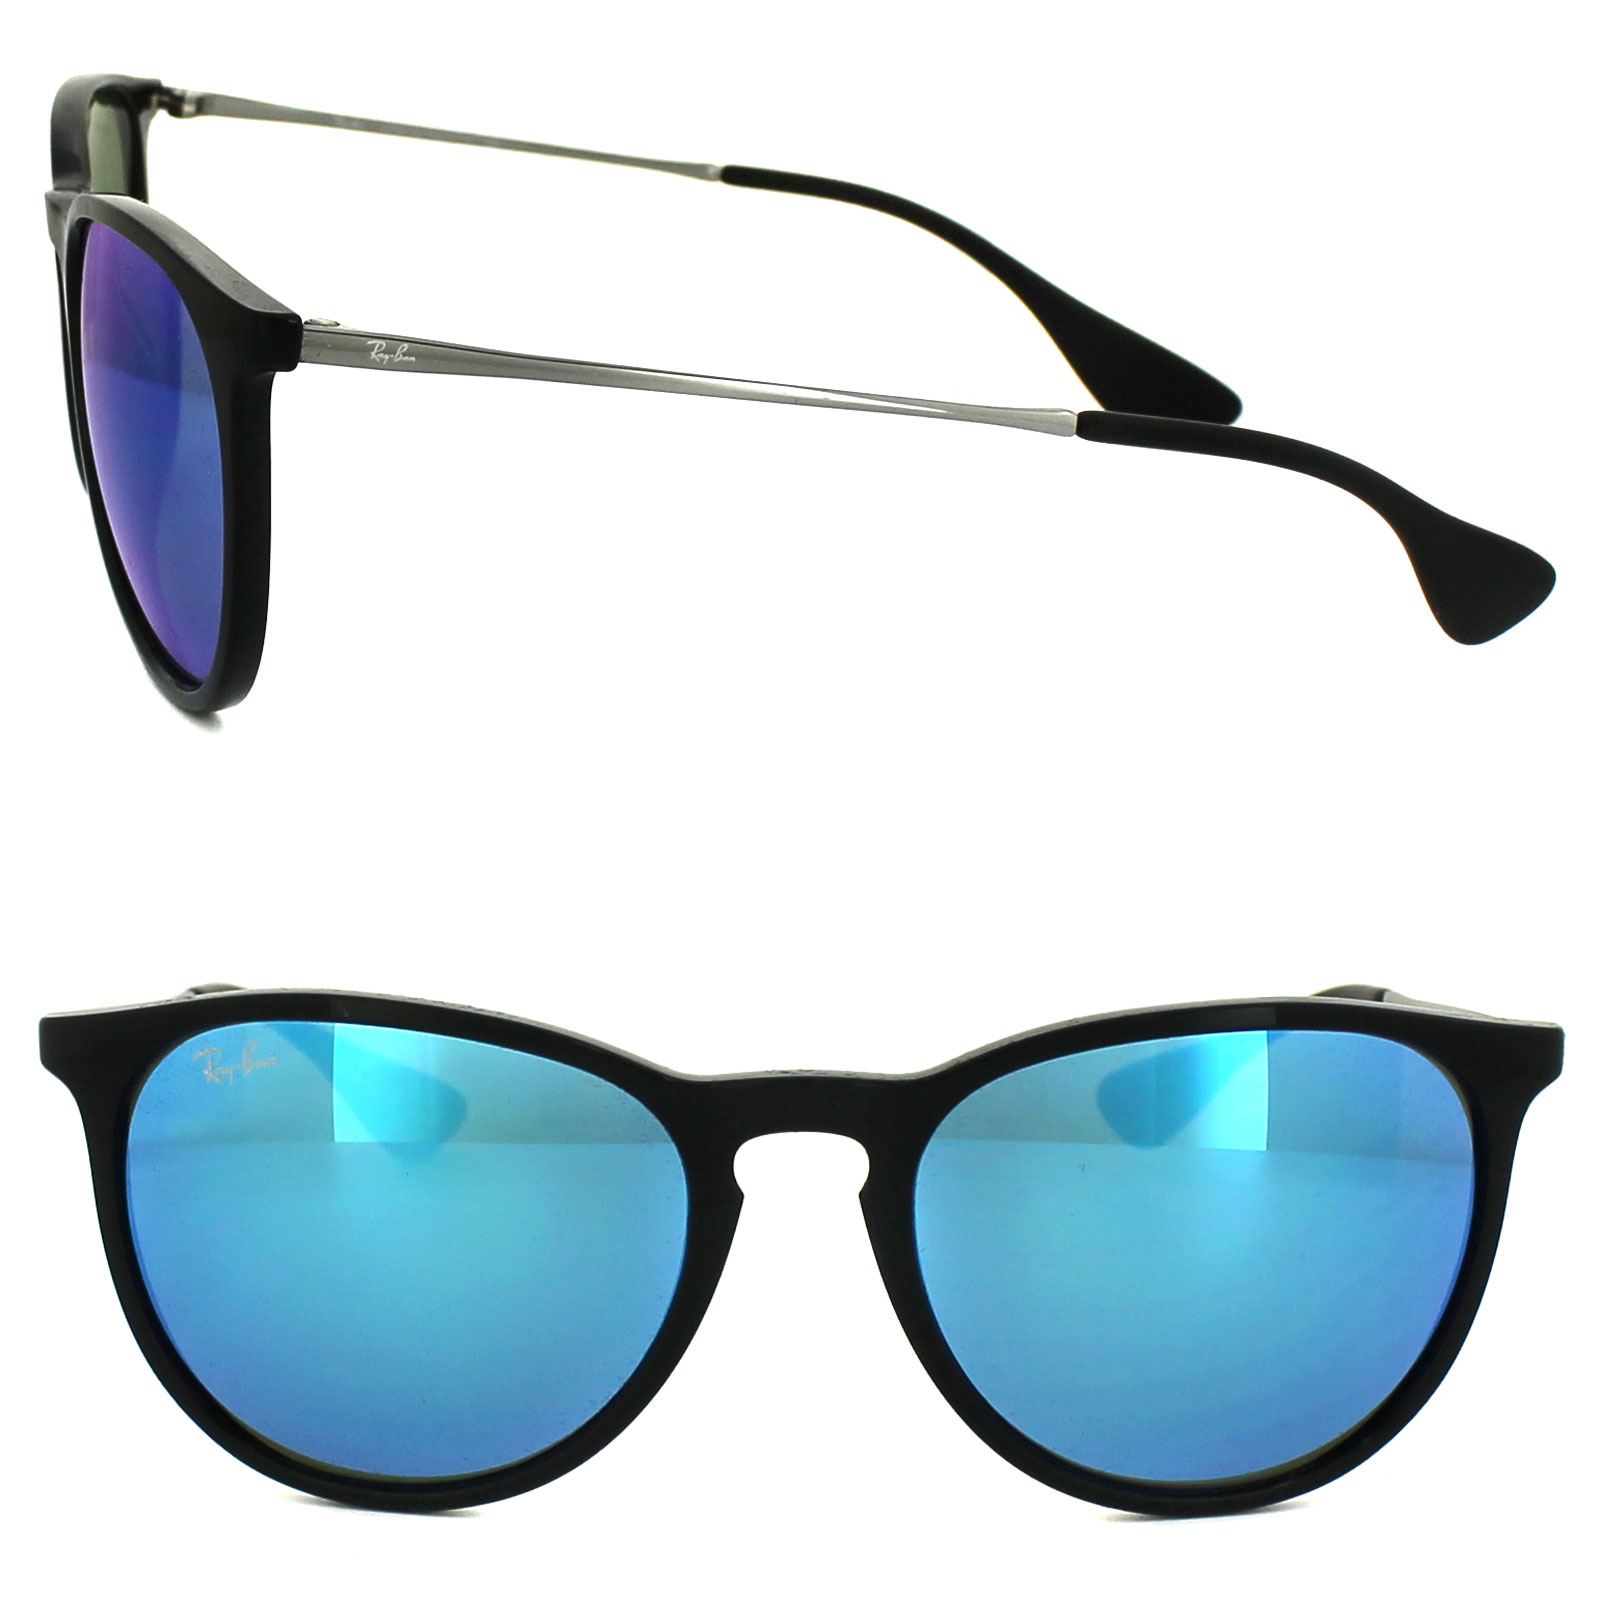 1eb5e1c3a2 Sentinel Ray-Ban Sunglasses Erika 4171 601 55 Black   Gunmetal Blue Mirror